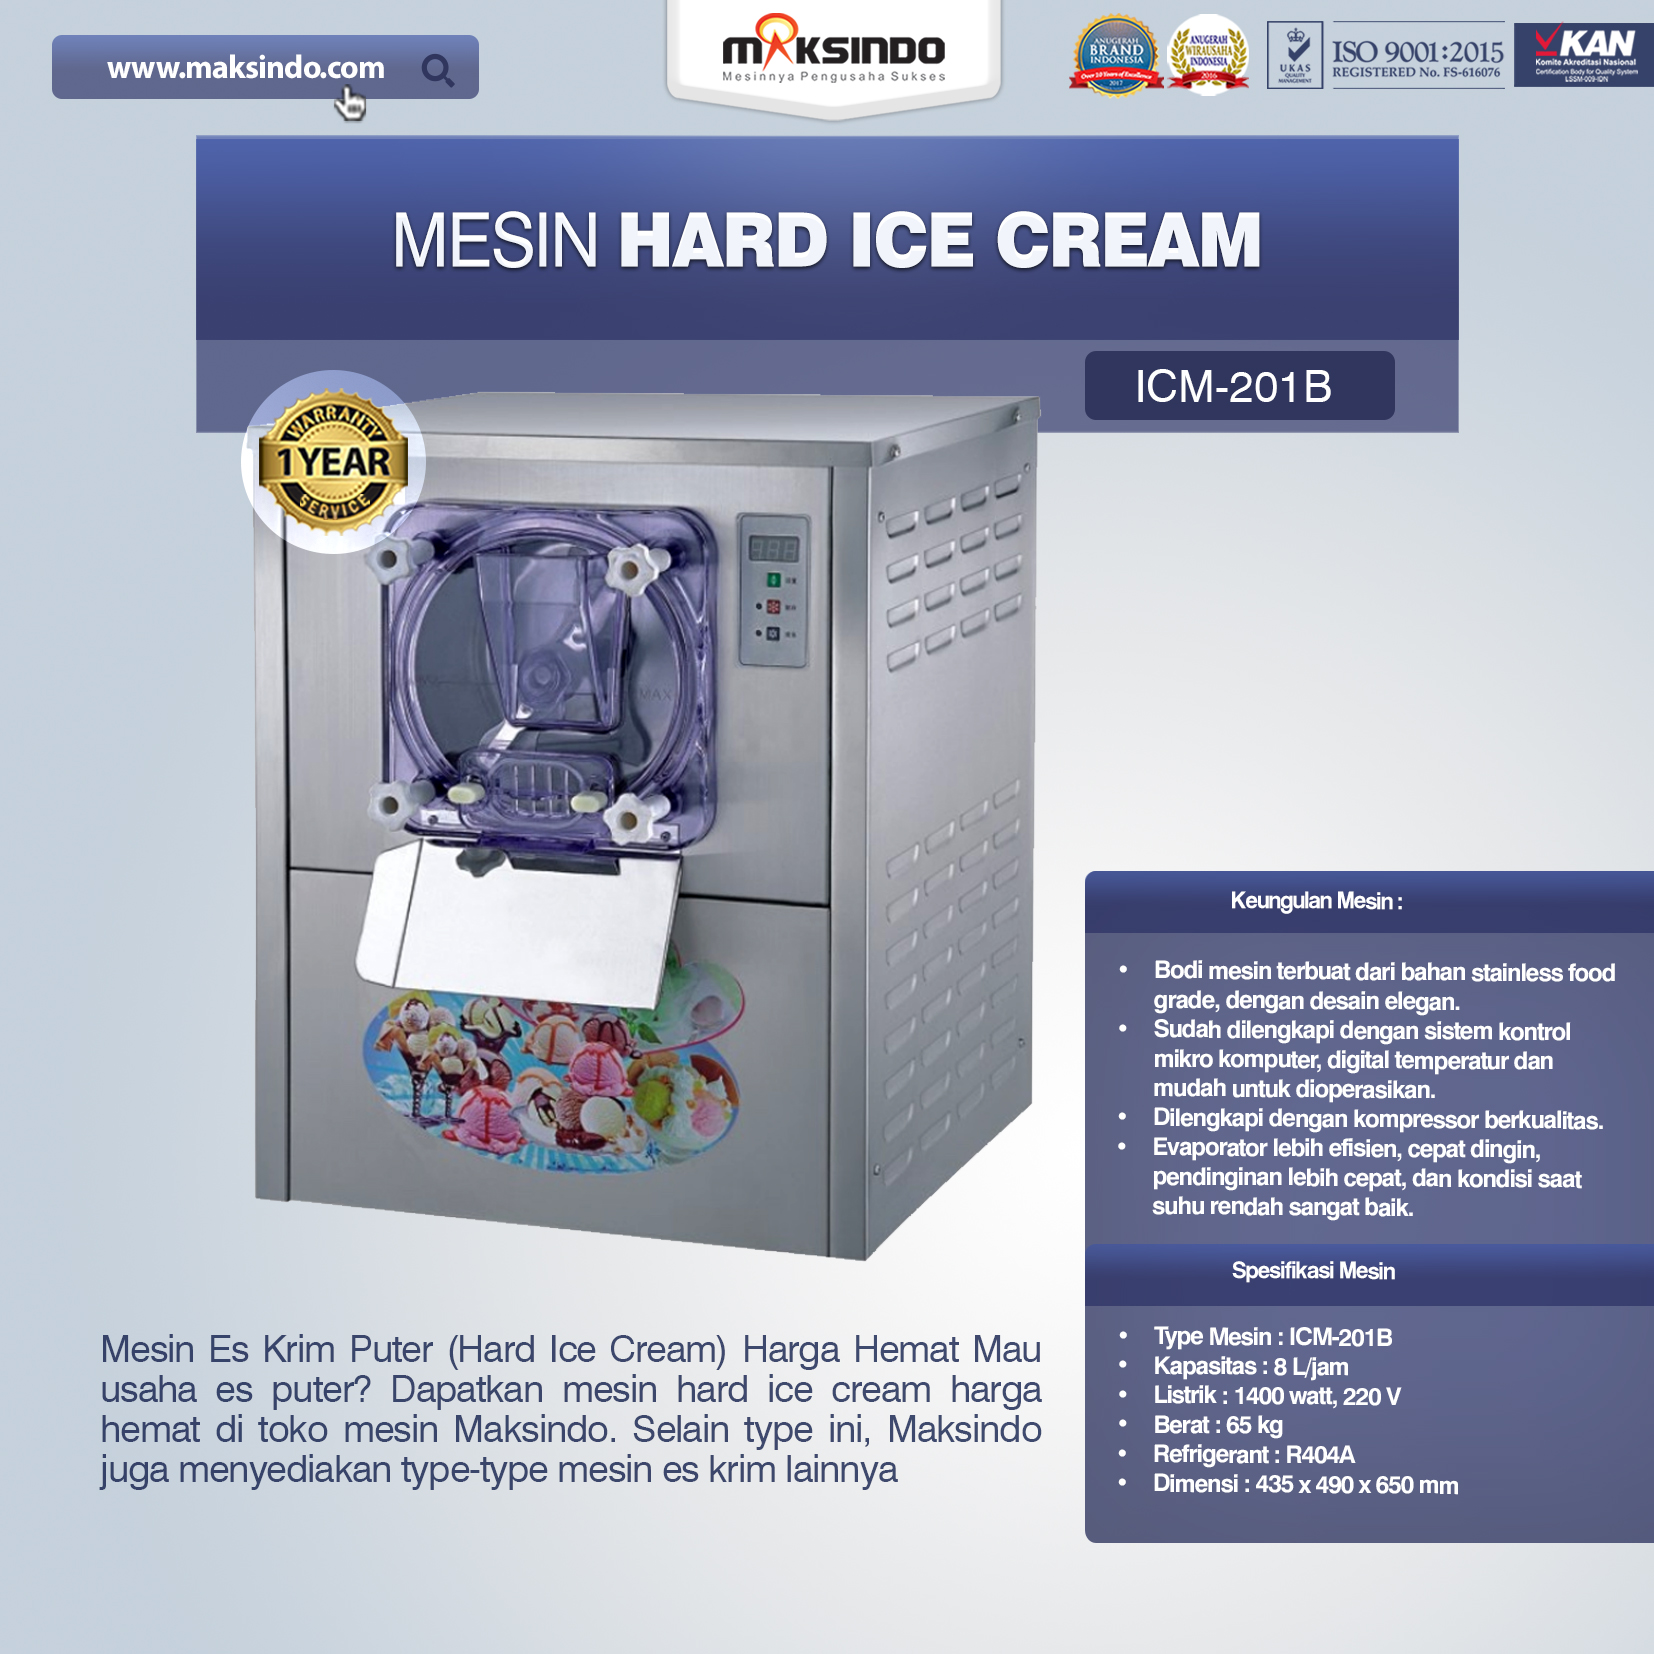 Jual Mesin Hard Ice Cream (ICM201B) di Banjarmasin